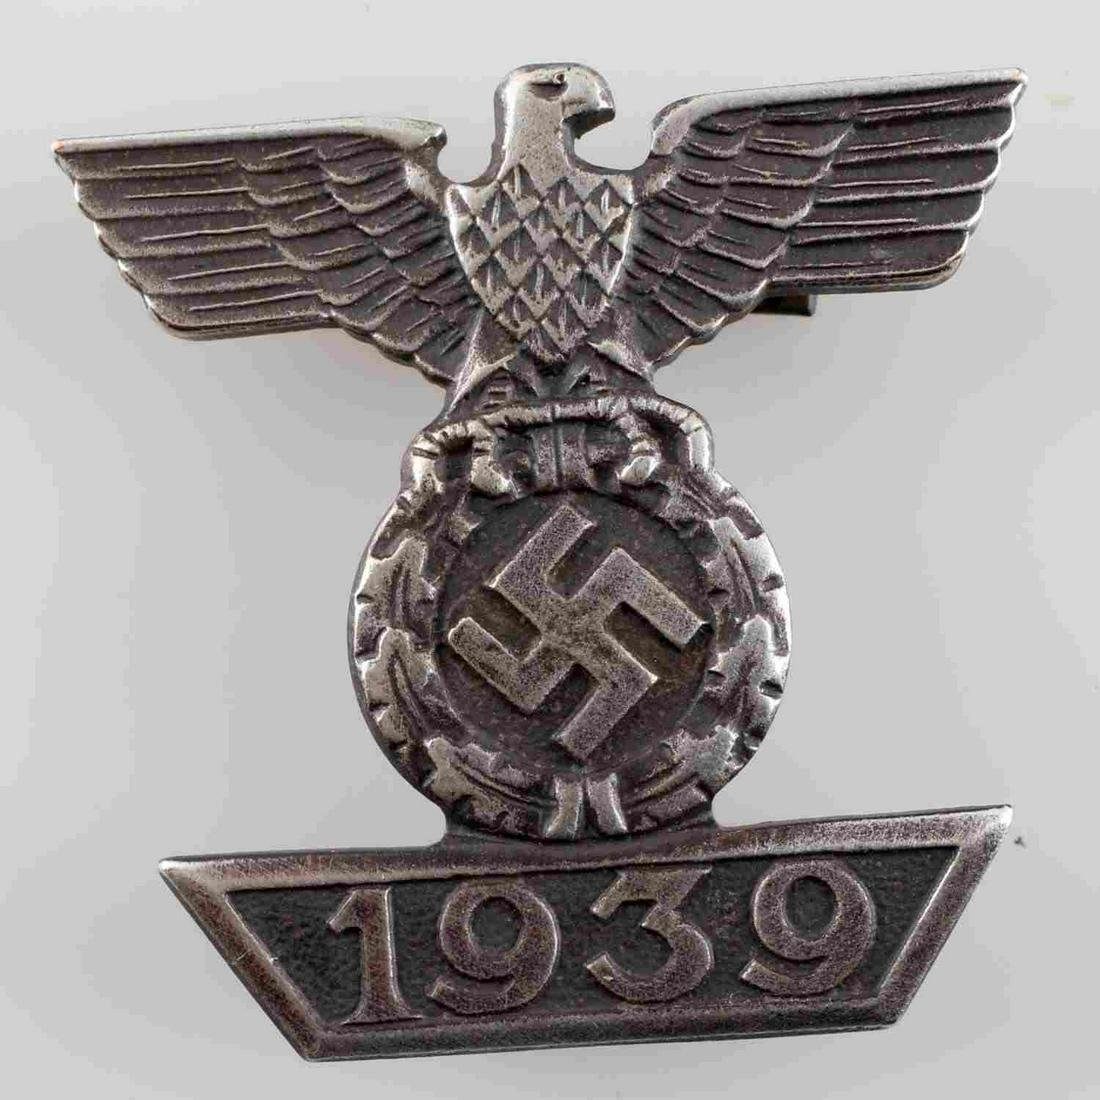 WWII GERMAN 3RD REICH IRON CROSS 2ND CLASS SPANGE